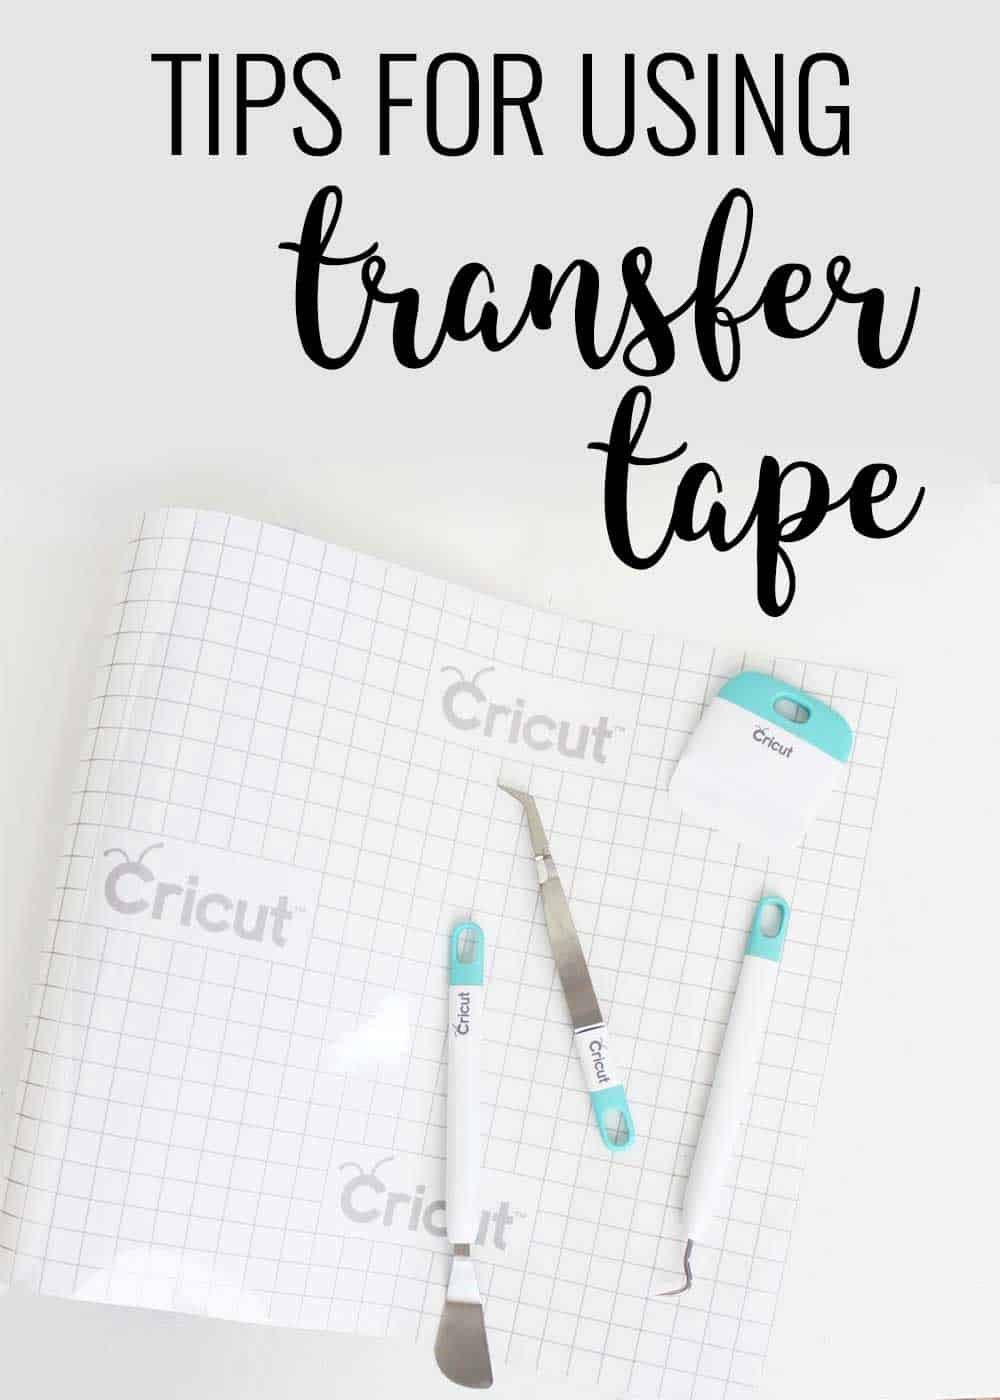 Cricut Transfer Tape for Vinyl